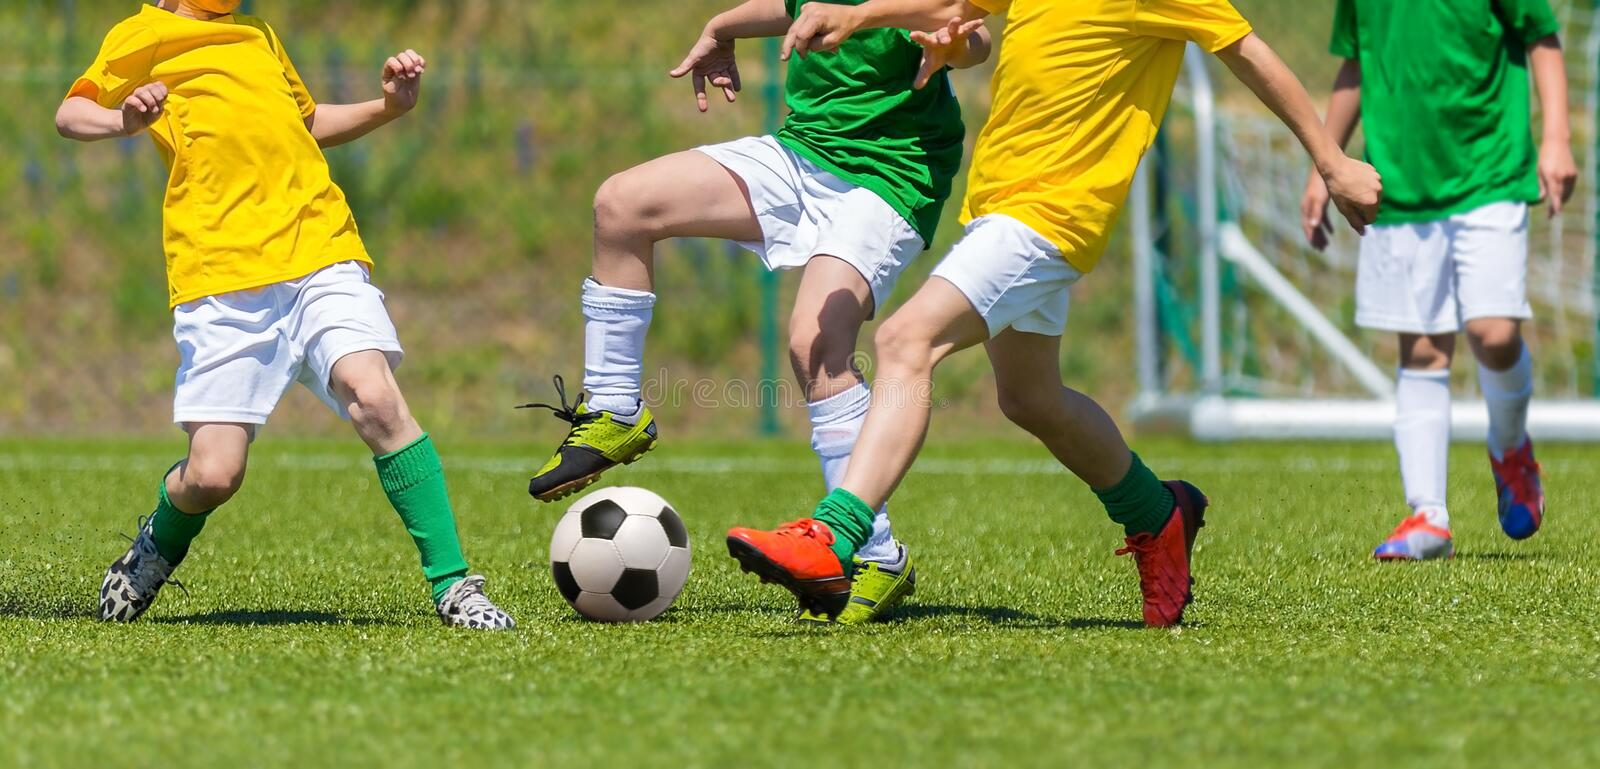 Training and football match between youth teams. Young boys play. Training and football match between youth soccer teams. Young boys playing soccer game. Hard stock image